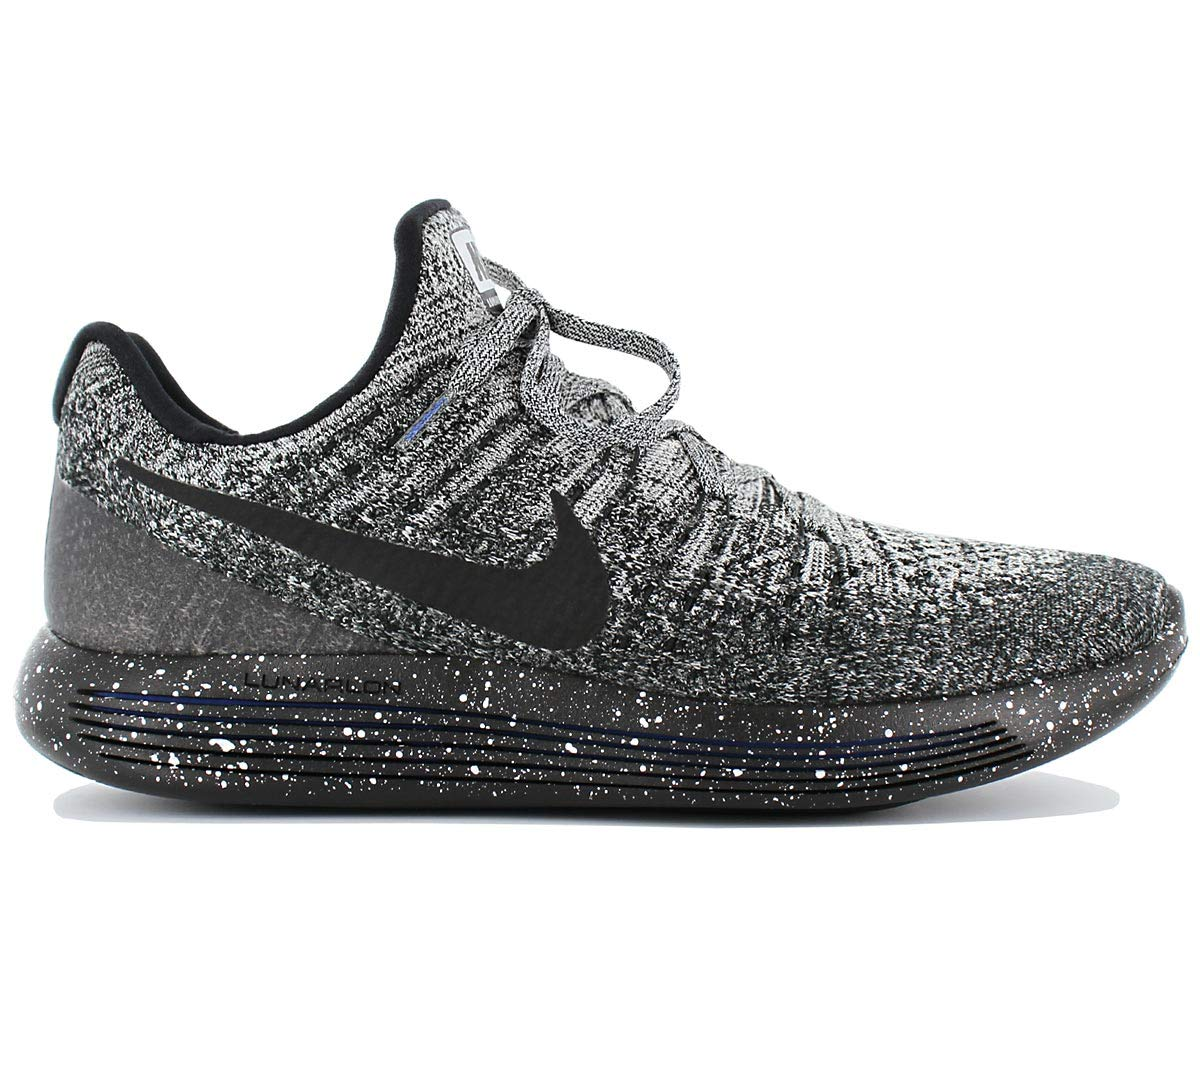 outlet store e5cc4 06dd6 Galleon - Nike Lunarepic Low Flyknit Black Men's Running ...